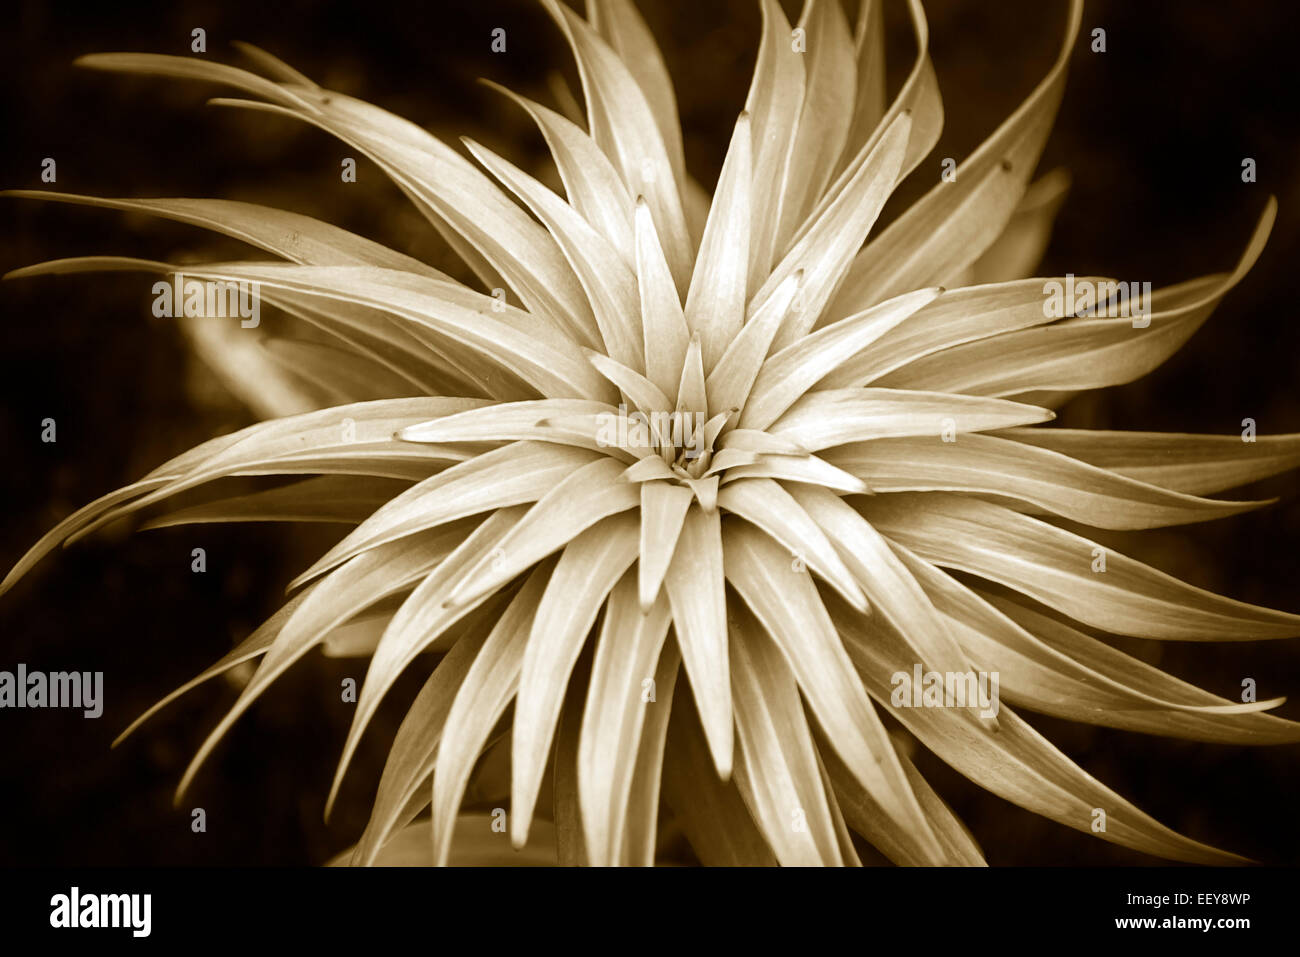 Plant abstract spiral pattern in sepia black and white - Stock Image